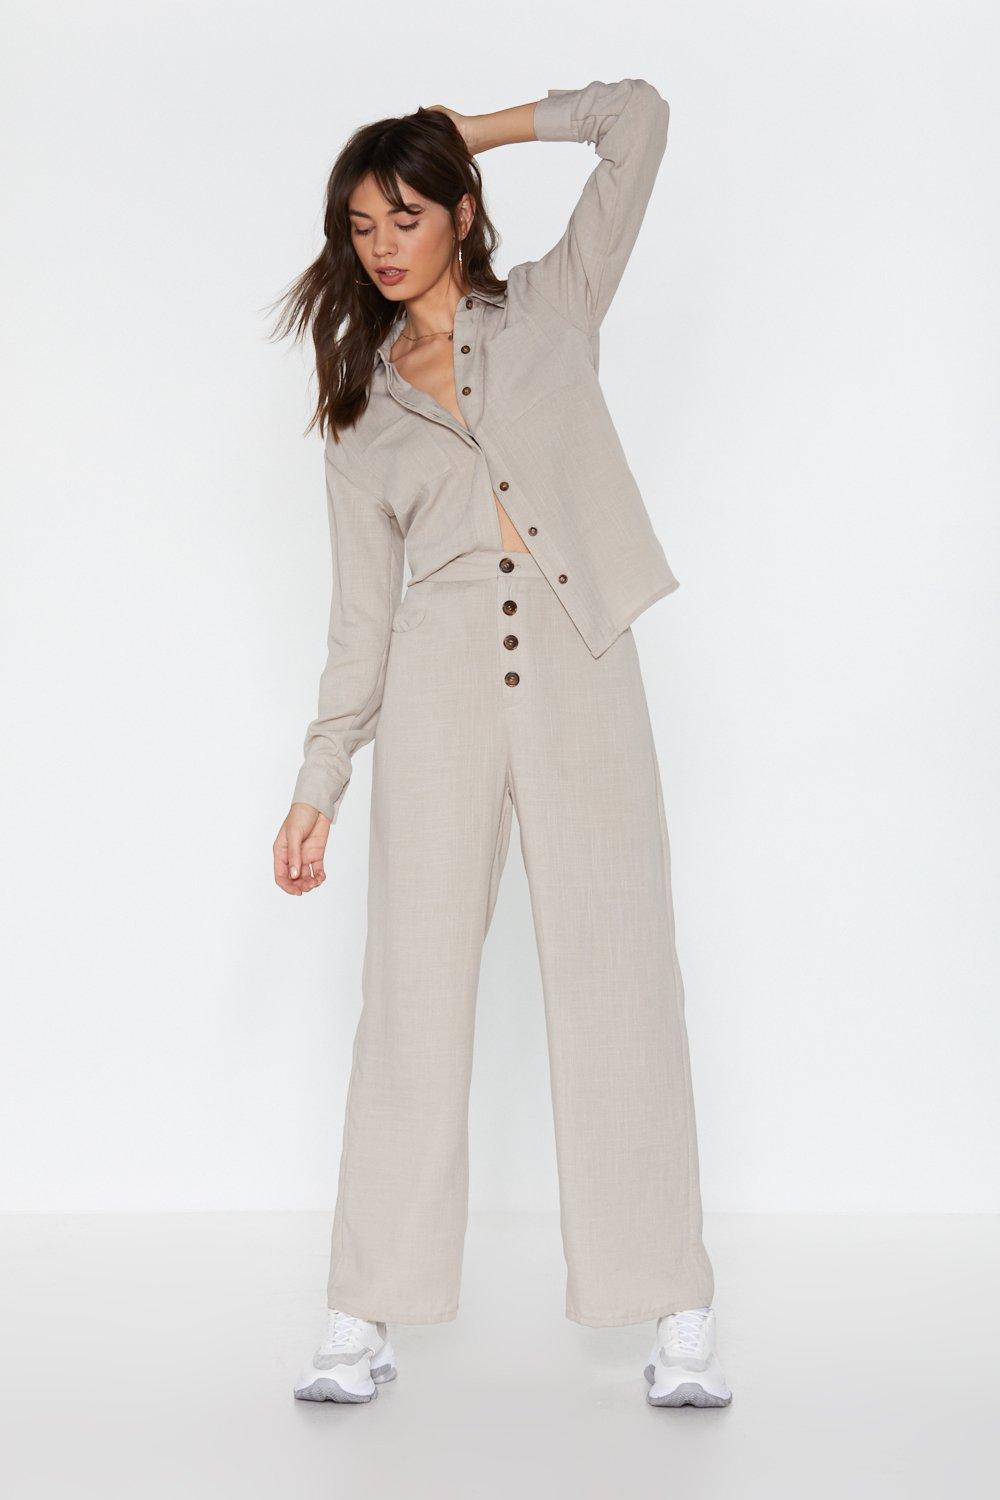 0092db7e2 Cut Down to Oversize Linen Shirt | Shop Clothes at Nasty Gal!